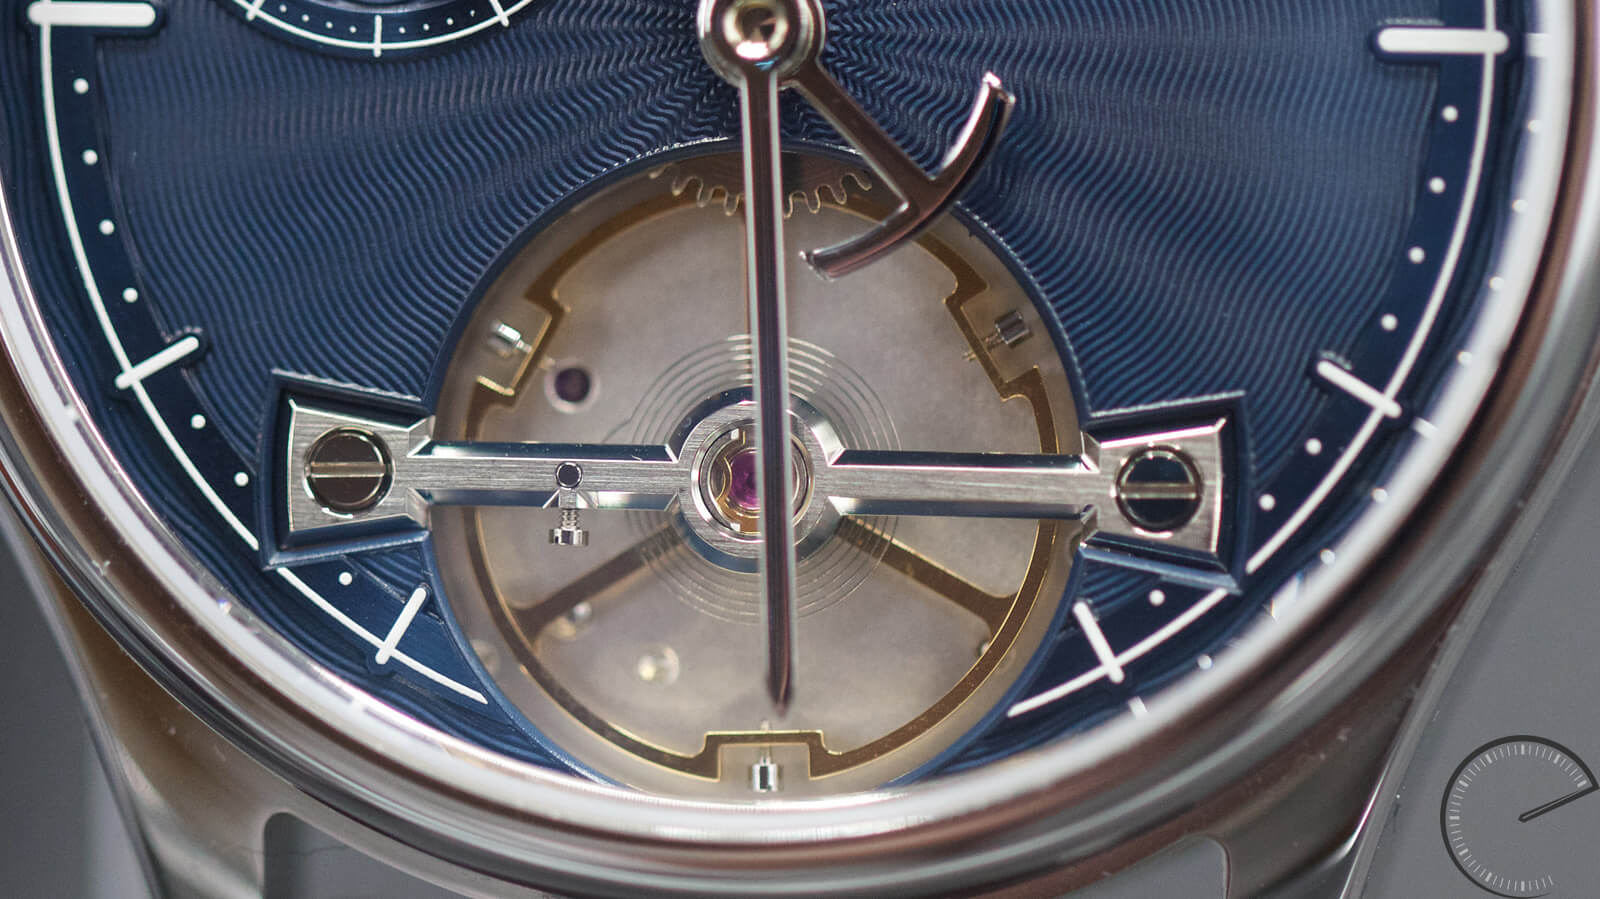 Garrick Portsmouth Mark 2 with guilloche dial and dial-side balance